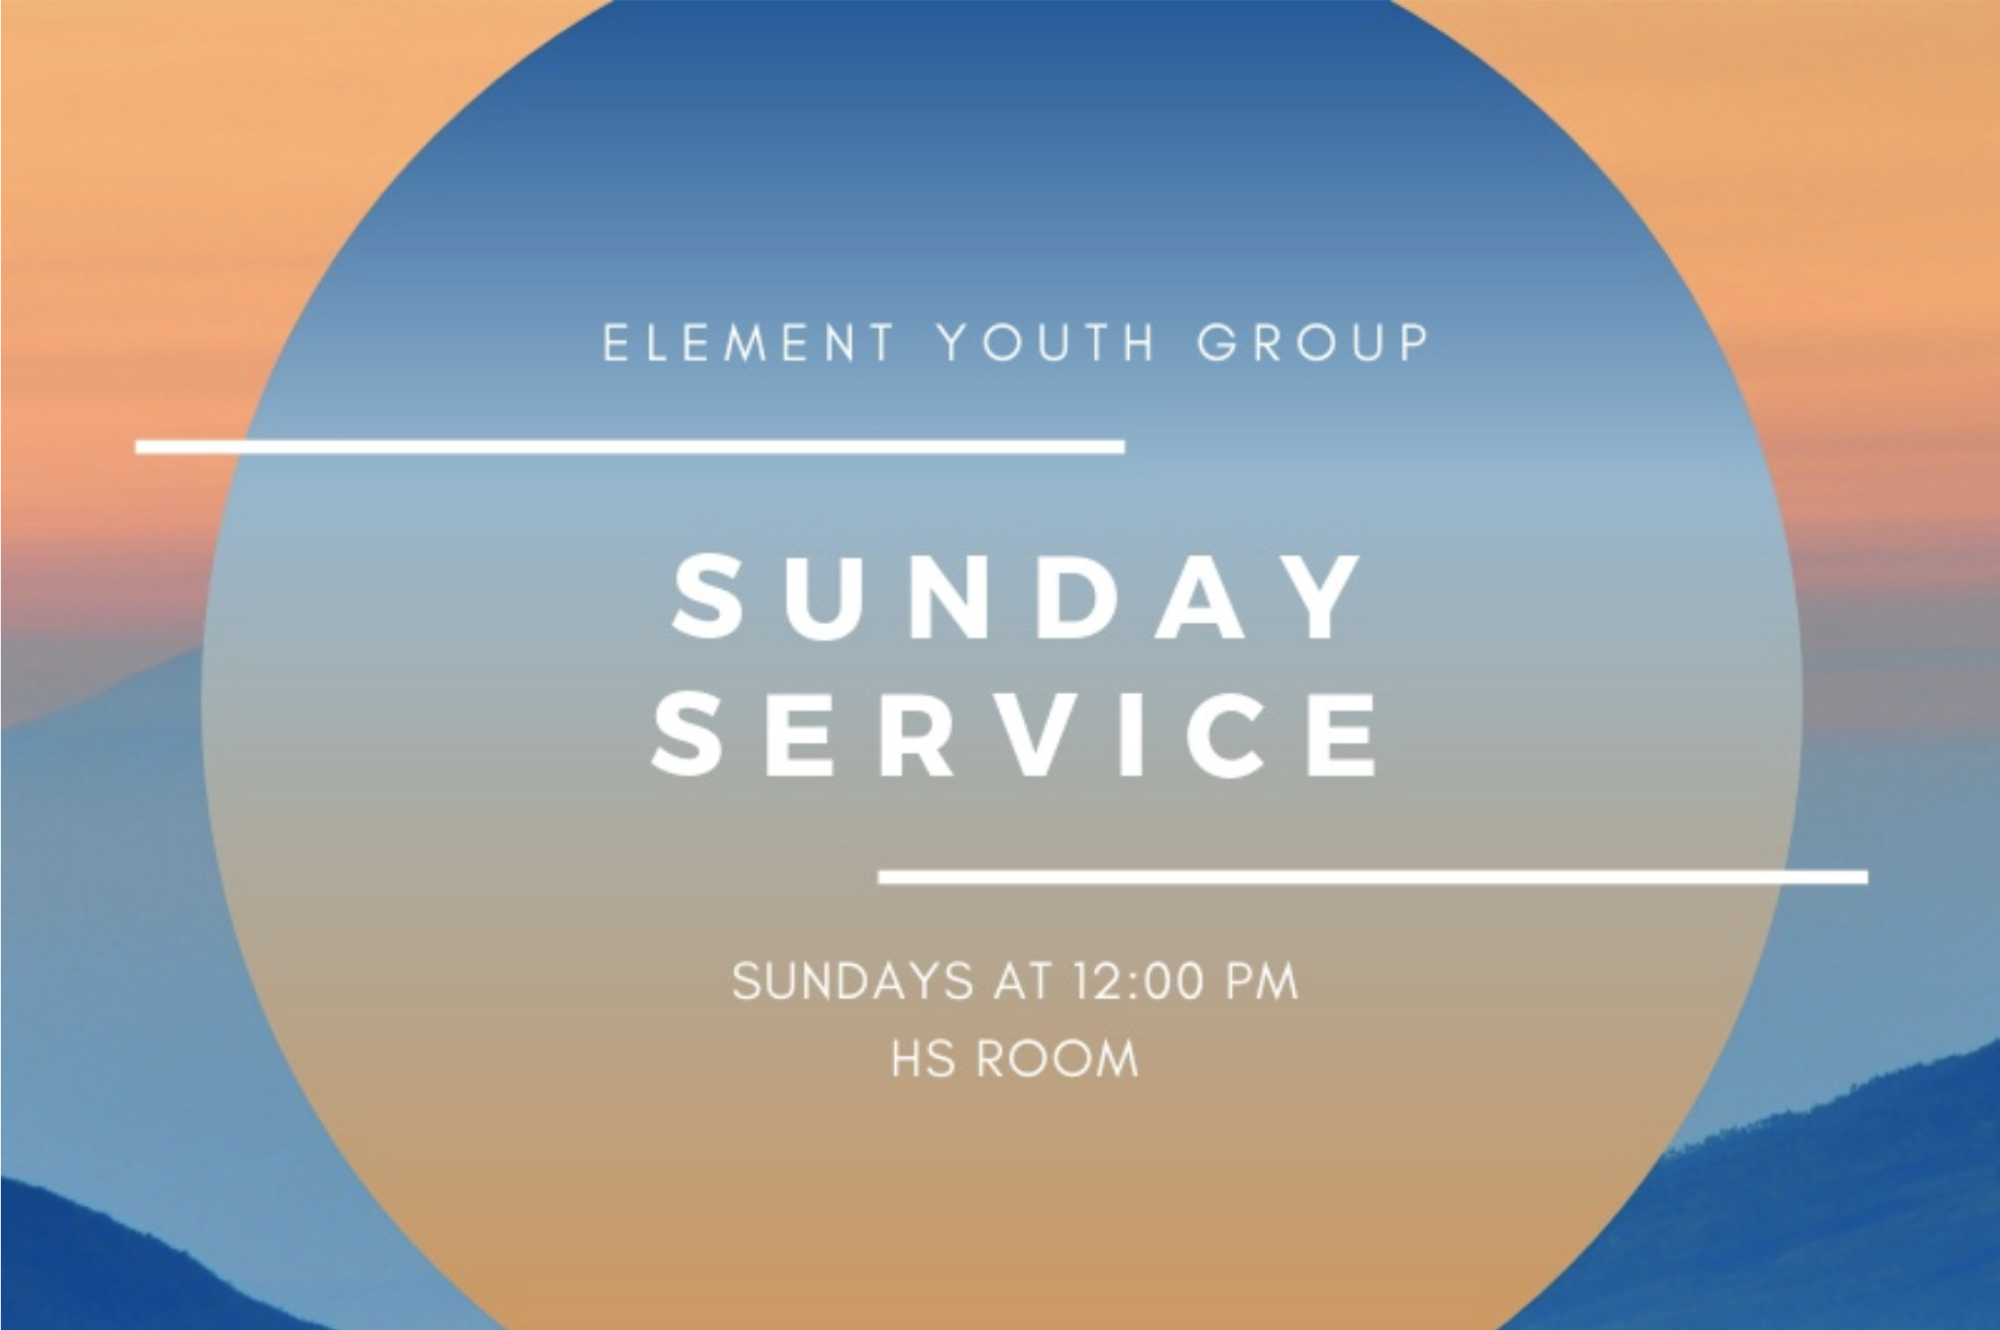 Sunday Service - Be sure to join us at 11:30 PM @ 1265 Harbor Bay Parkway in the HS room.